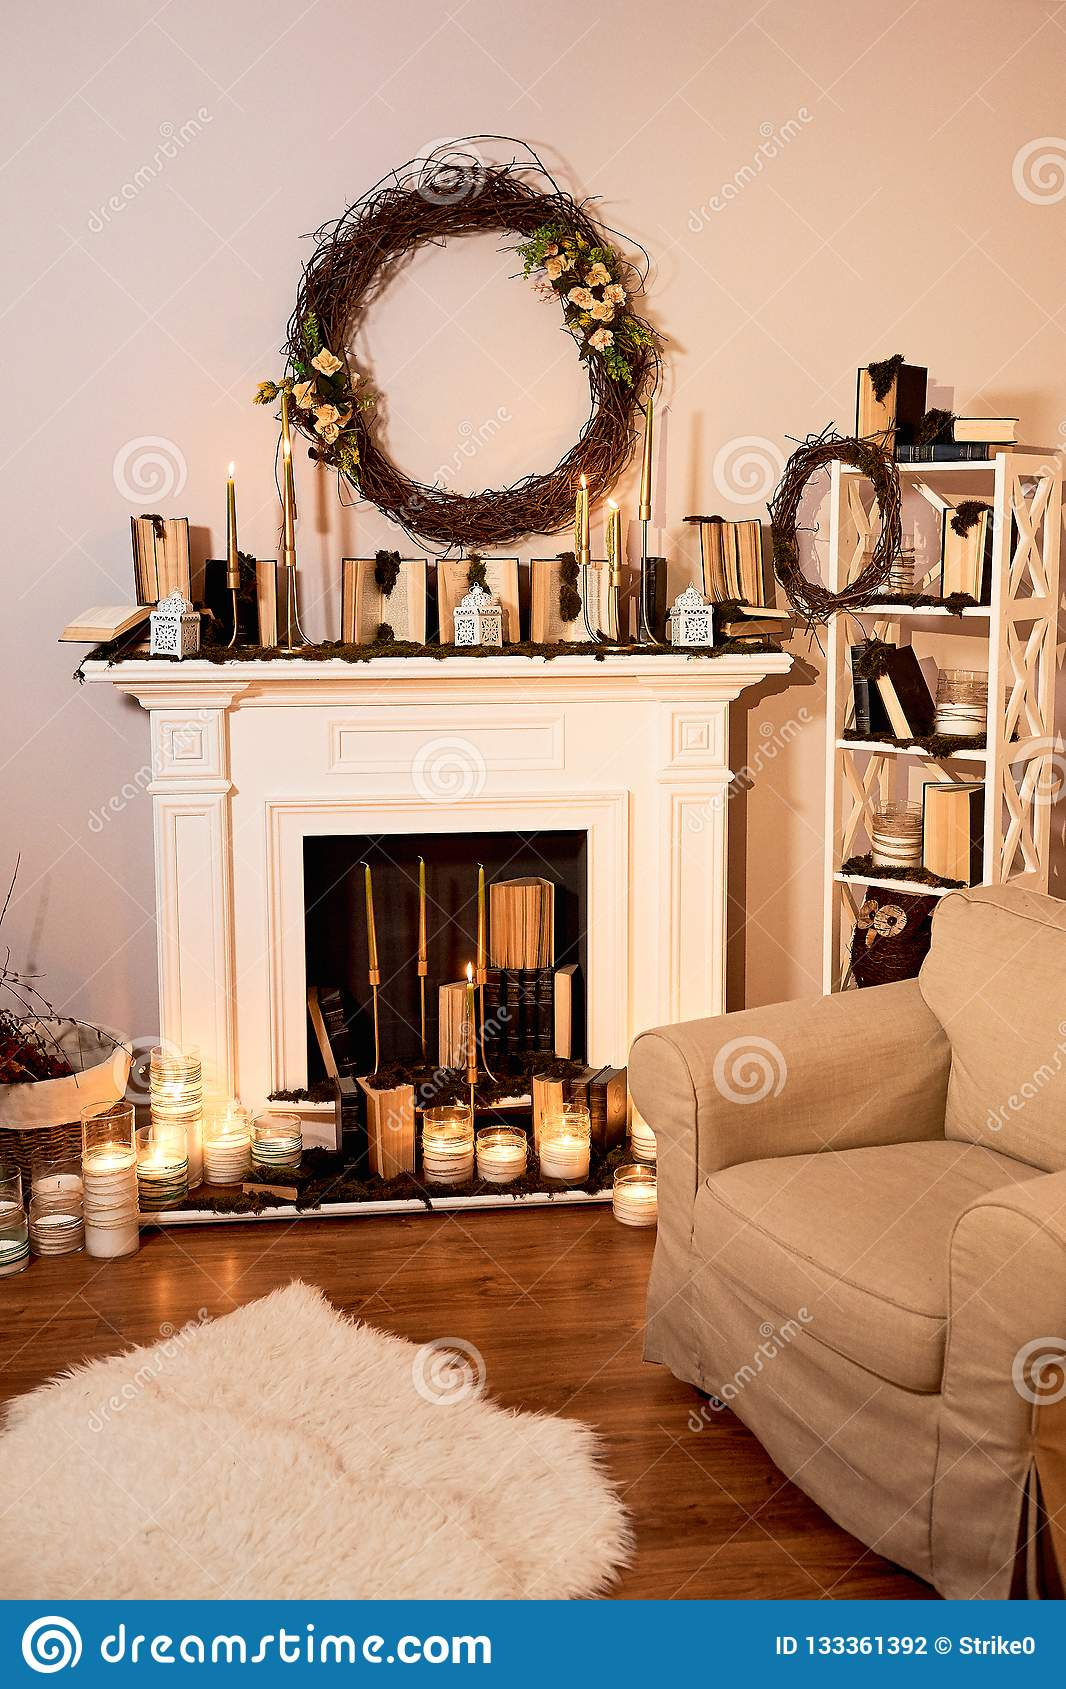 Autumn Interior The Concept Of Family Comfort Fireplace With